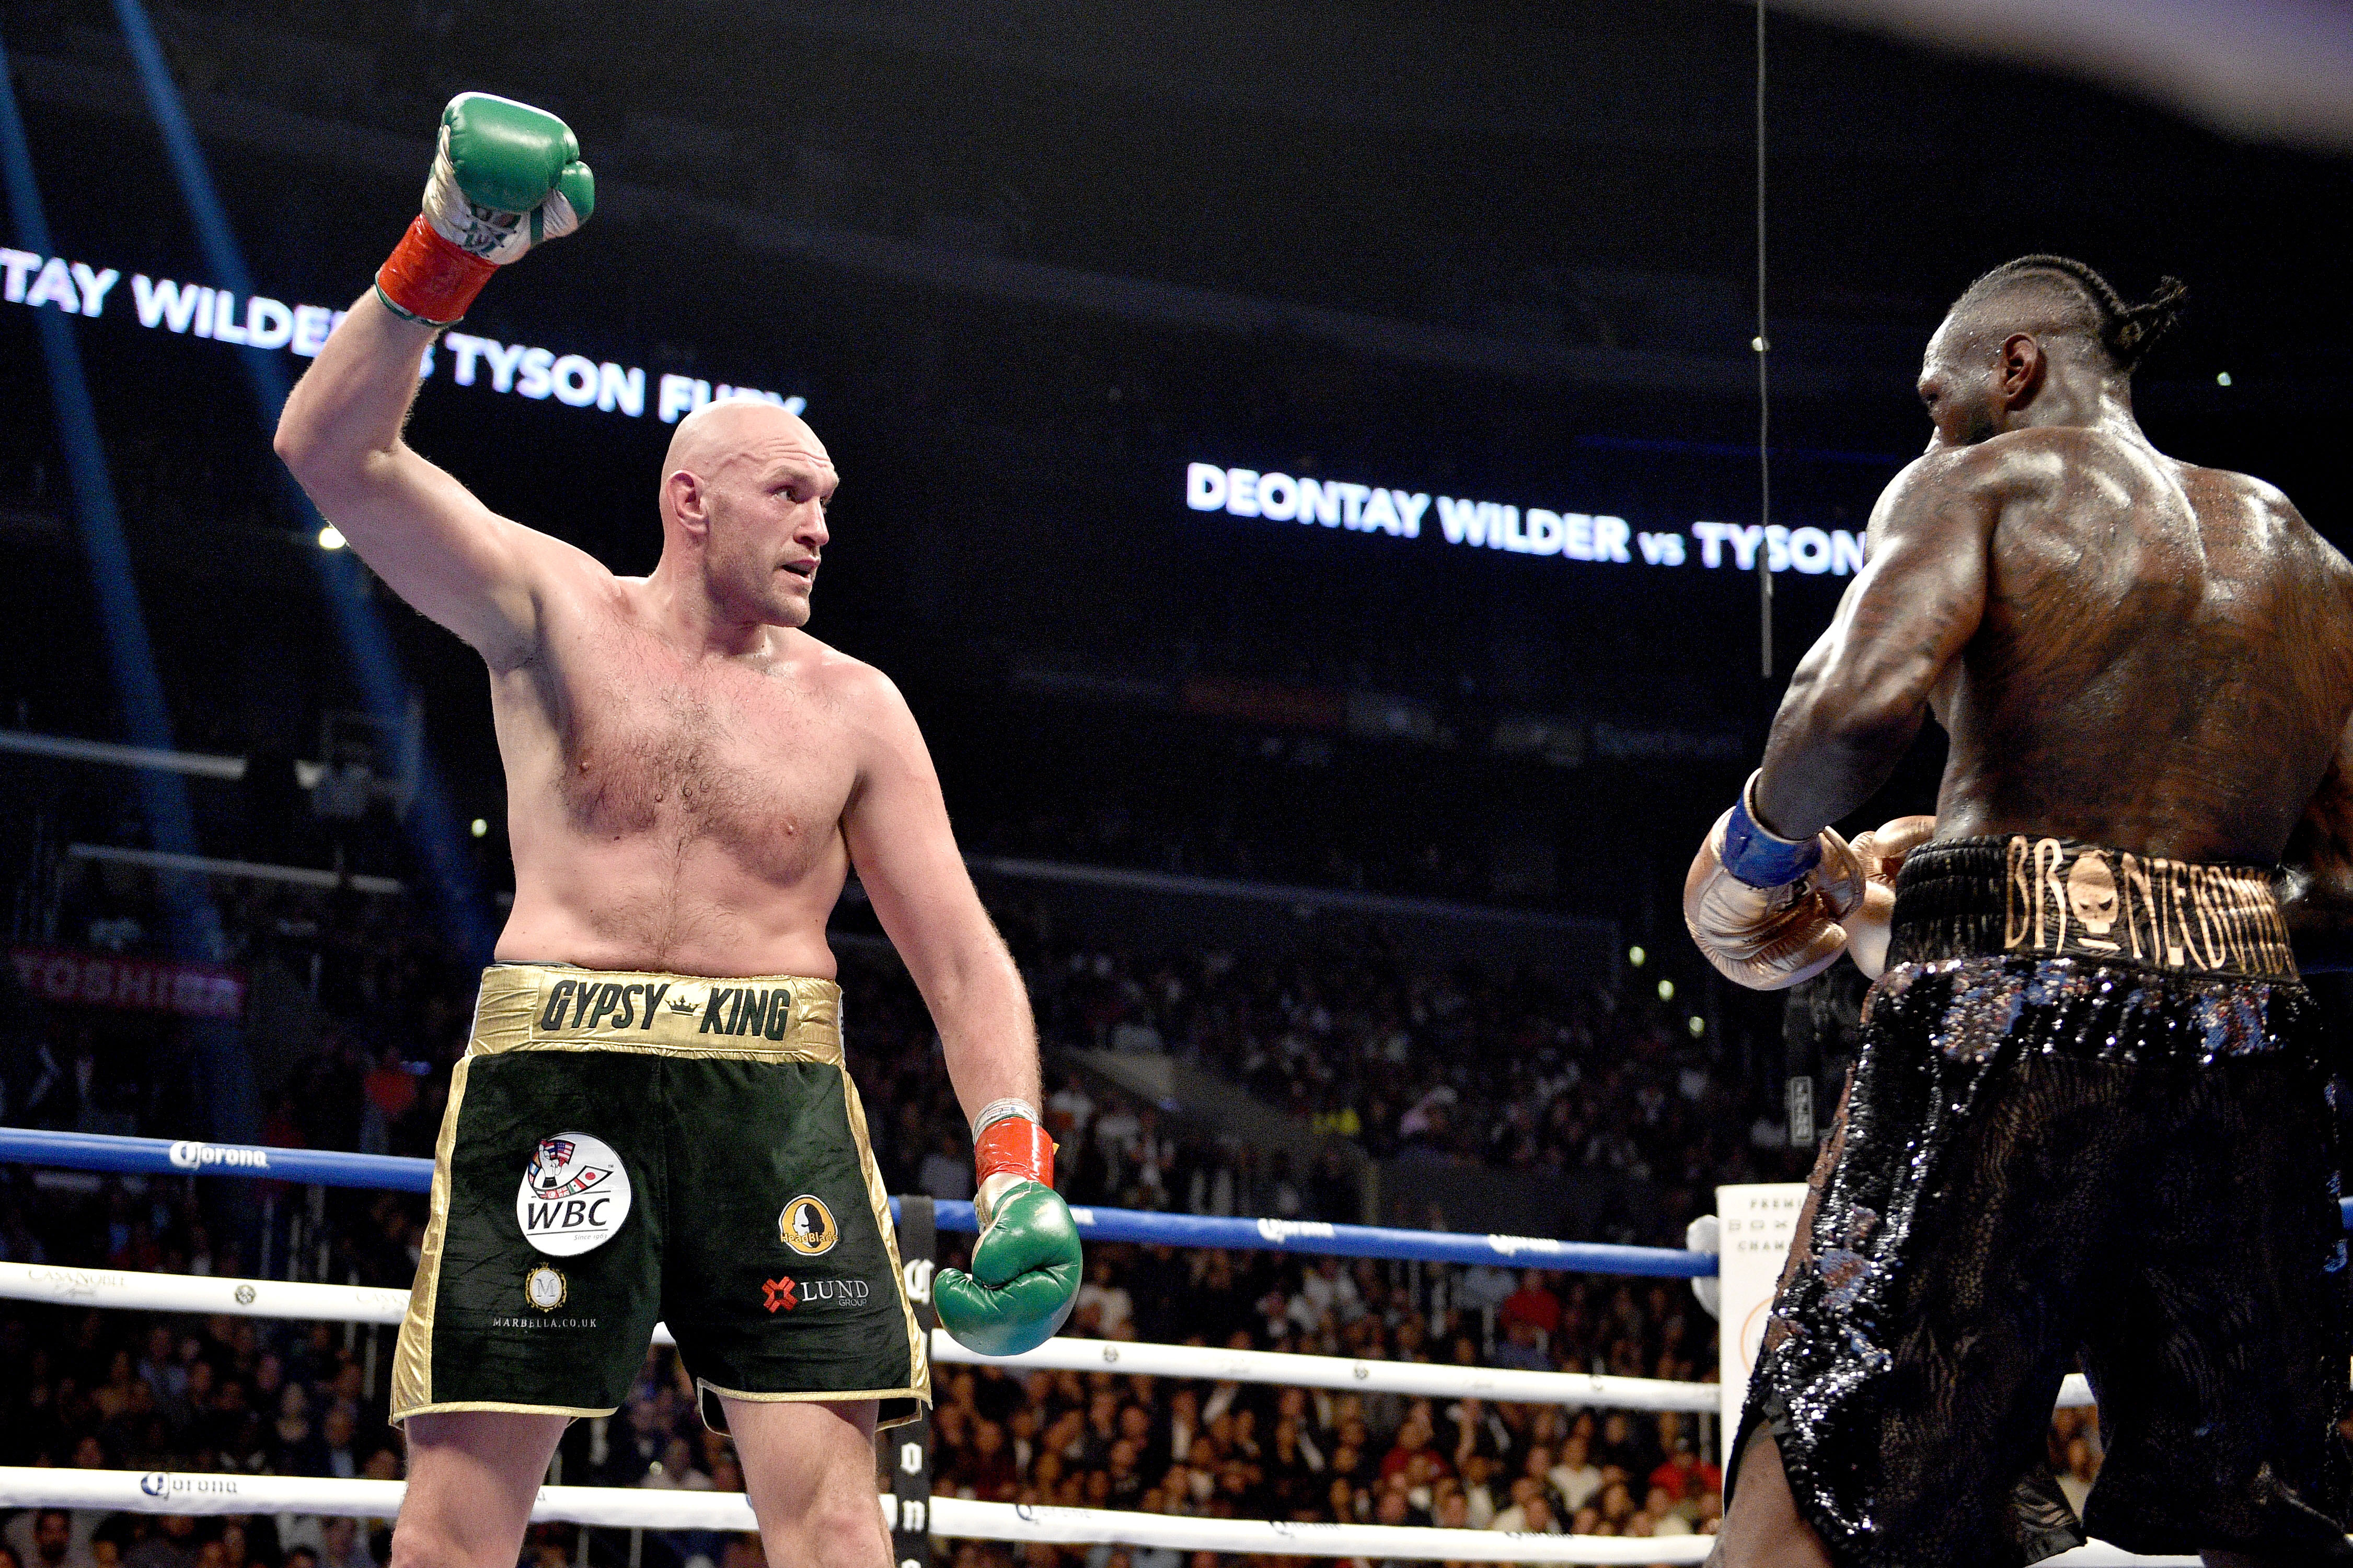 Tyson Fury drew with Deontay Wilder in Los Angeles. Credit: PA